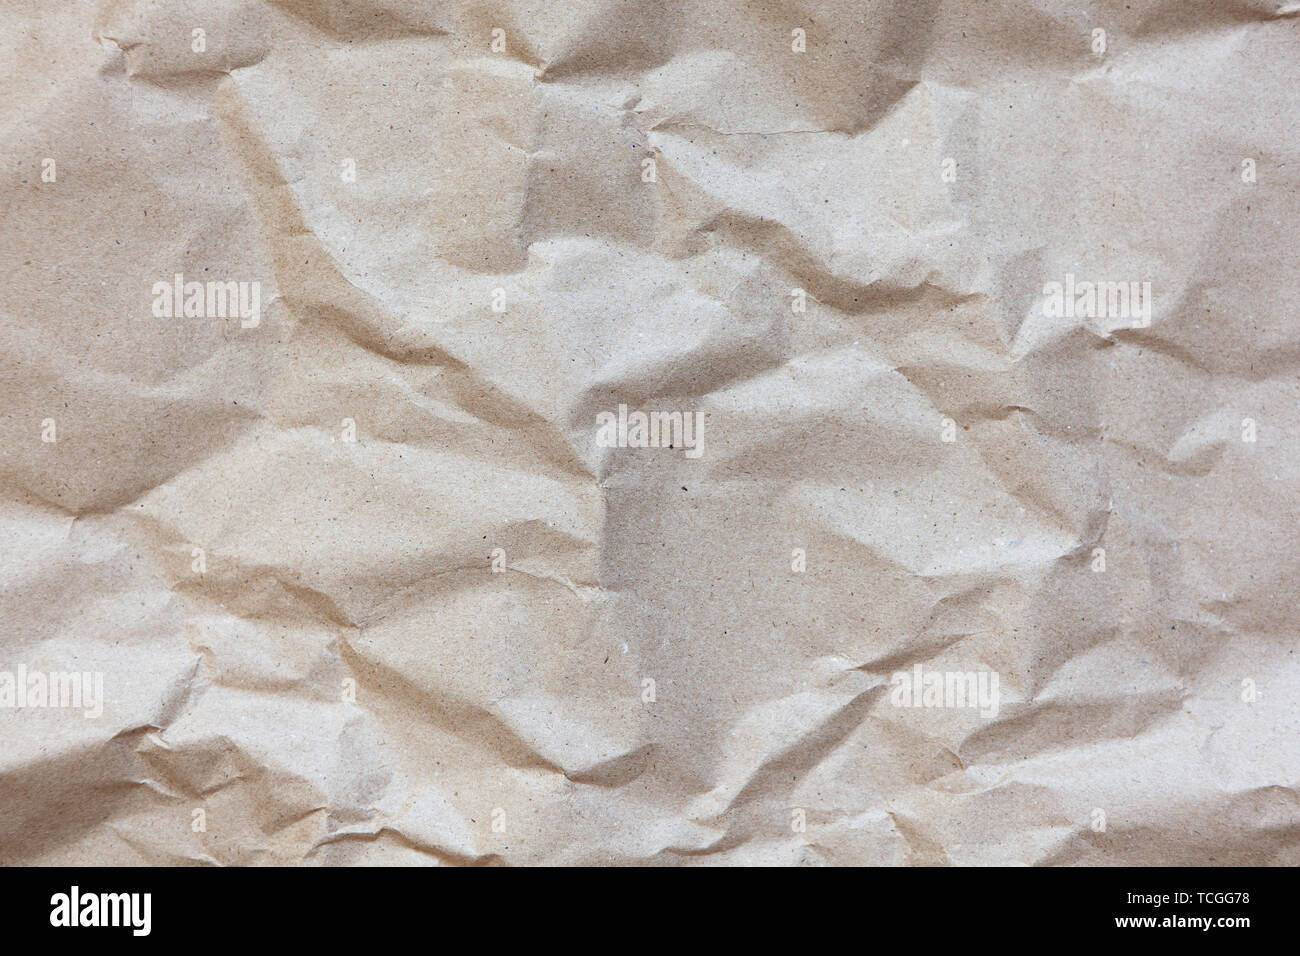 Abstract texture. Crumpled craft paper background. Copy space for text. Horizontal. DIY, handicraft, back to school, ecology, plastic free concept - Stock Image